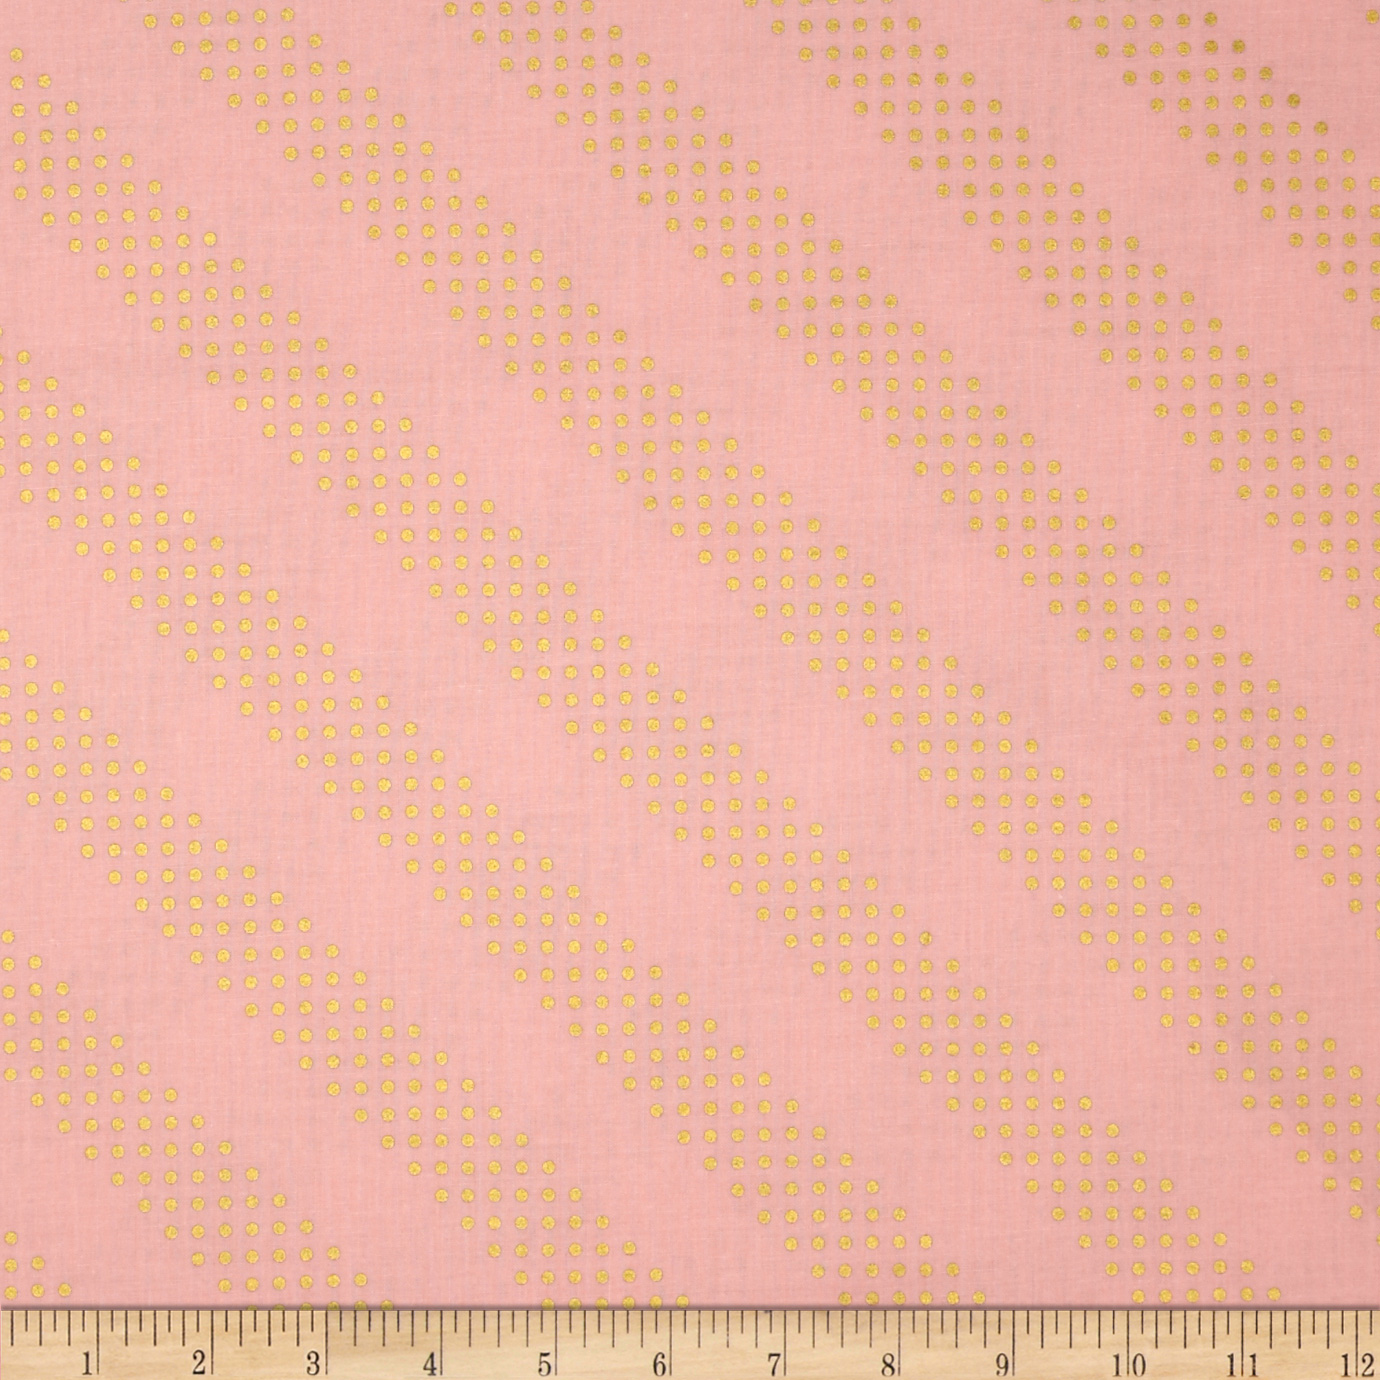 Image of Cotton + Steel Metallic Dottie Cotton Candy Fabric